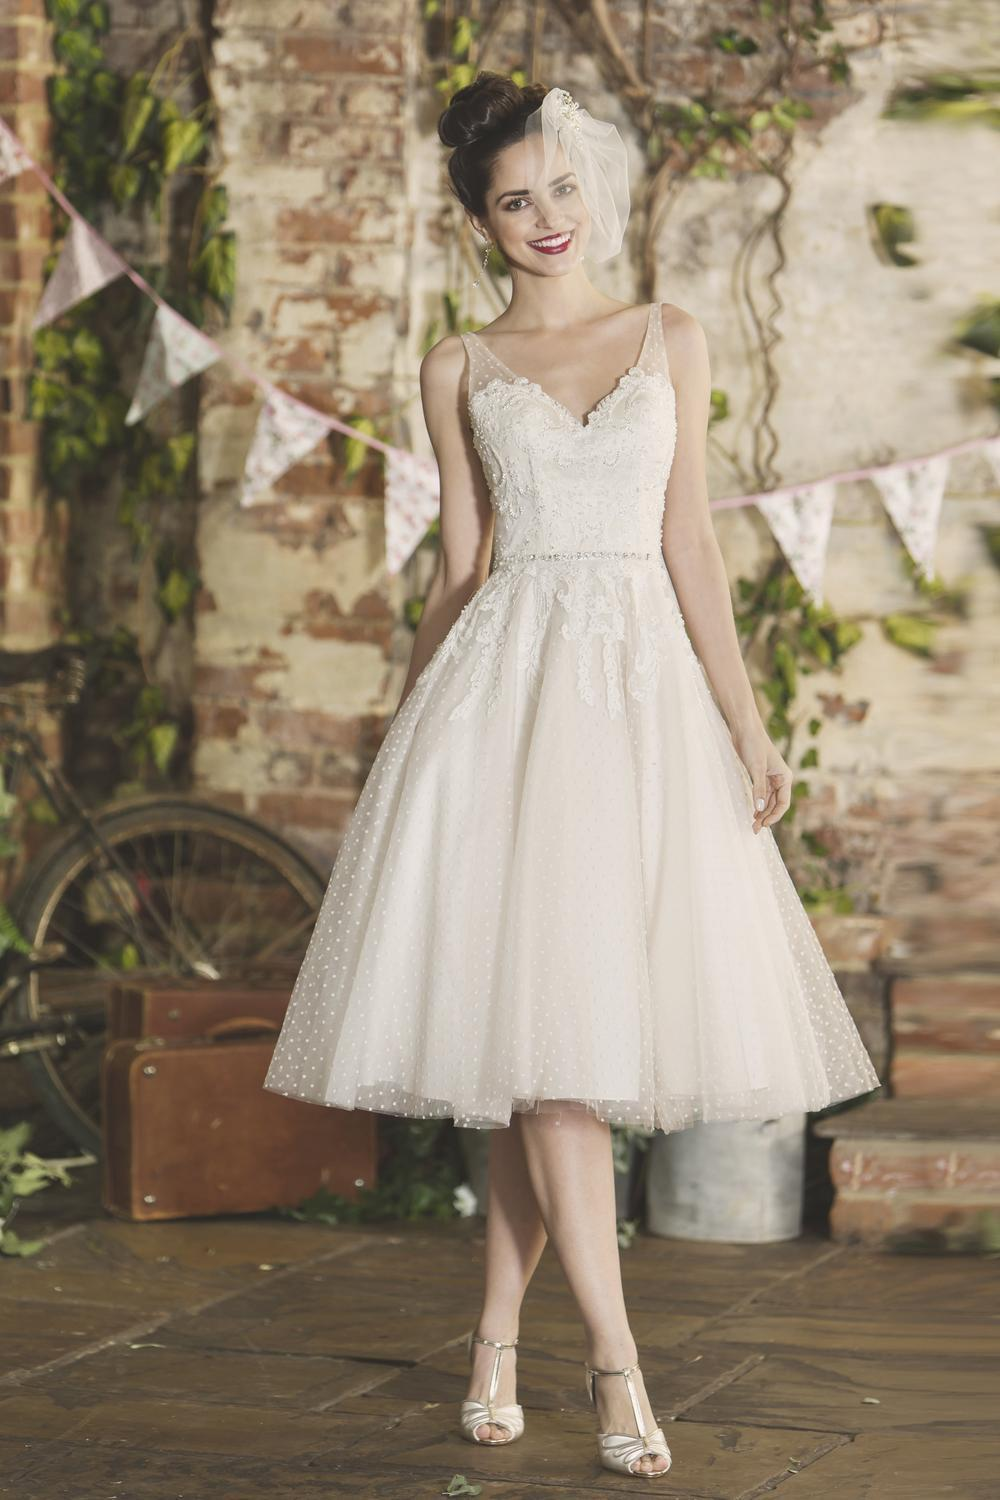 Sadie is a short tea length wedding dress with V neck